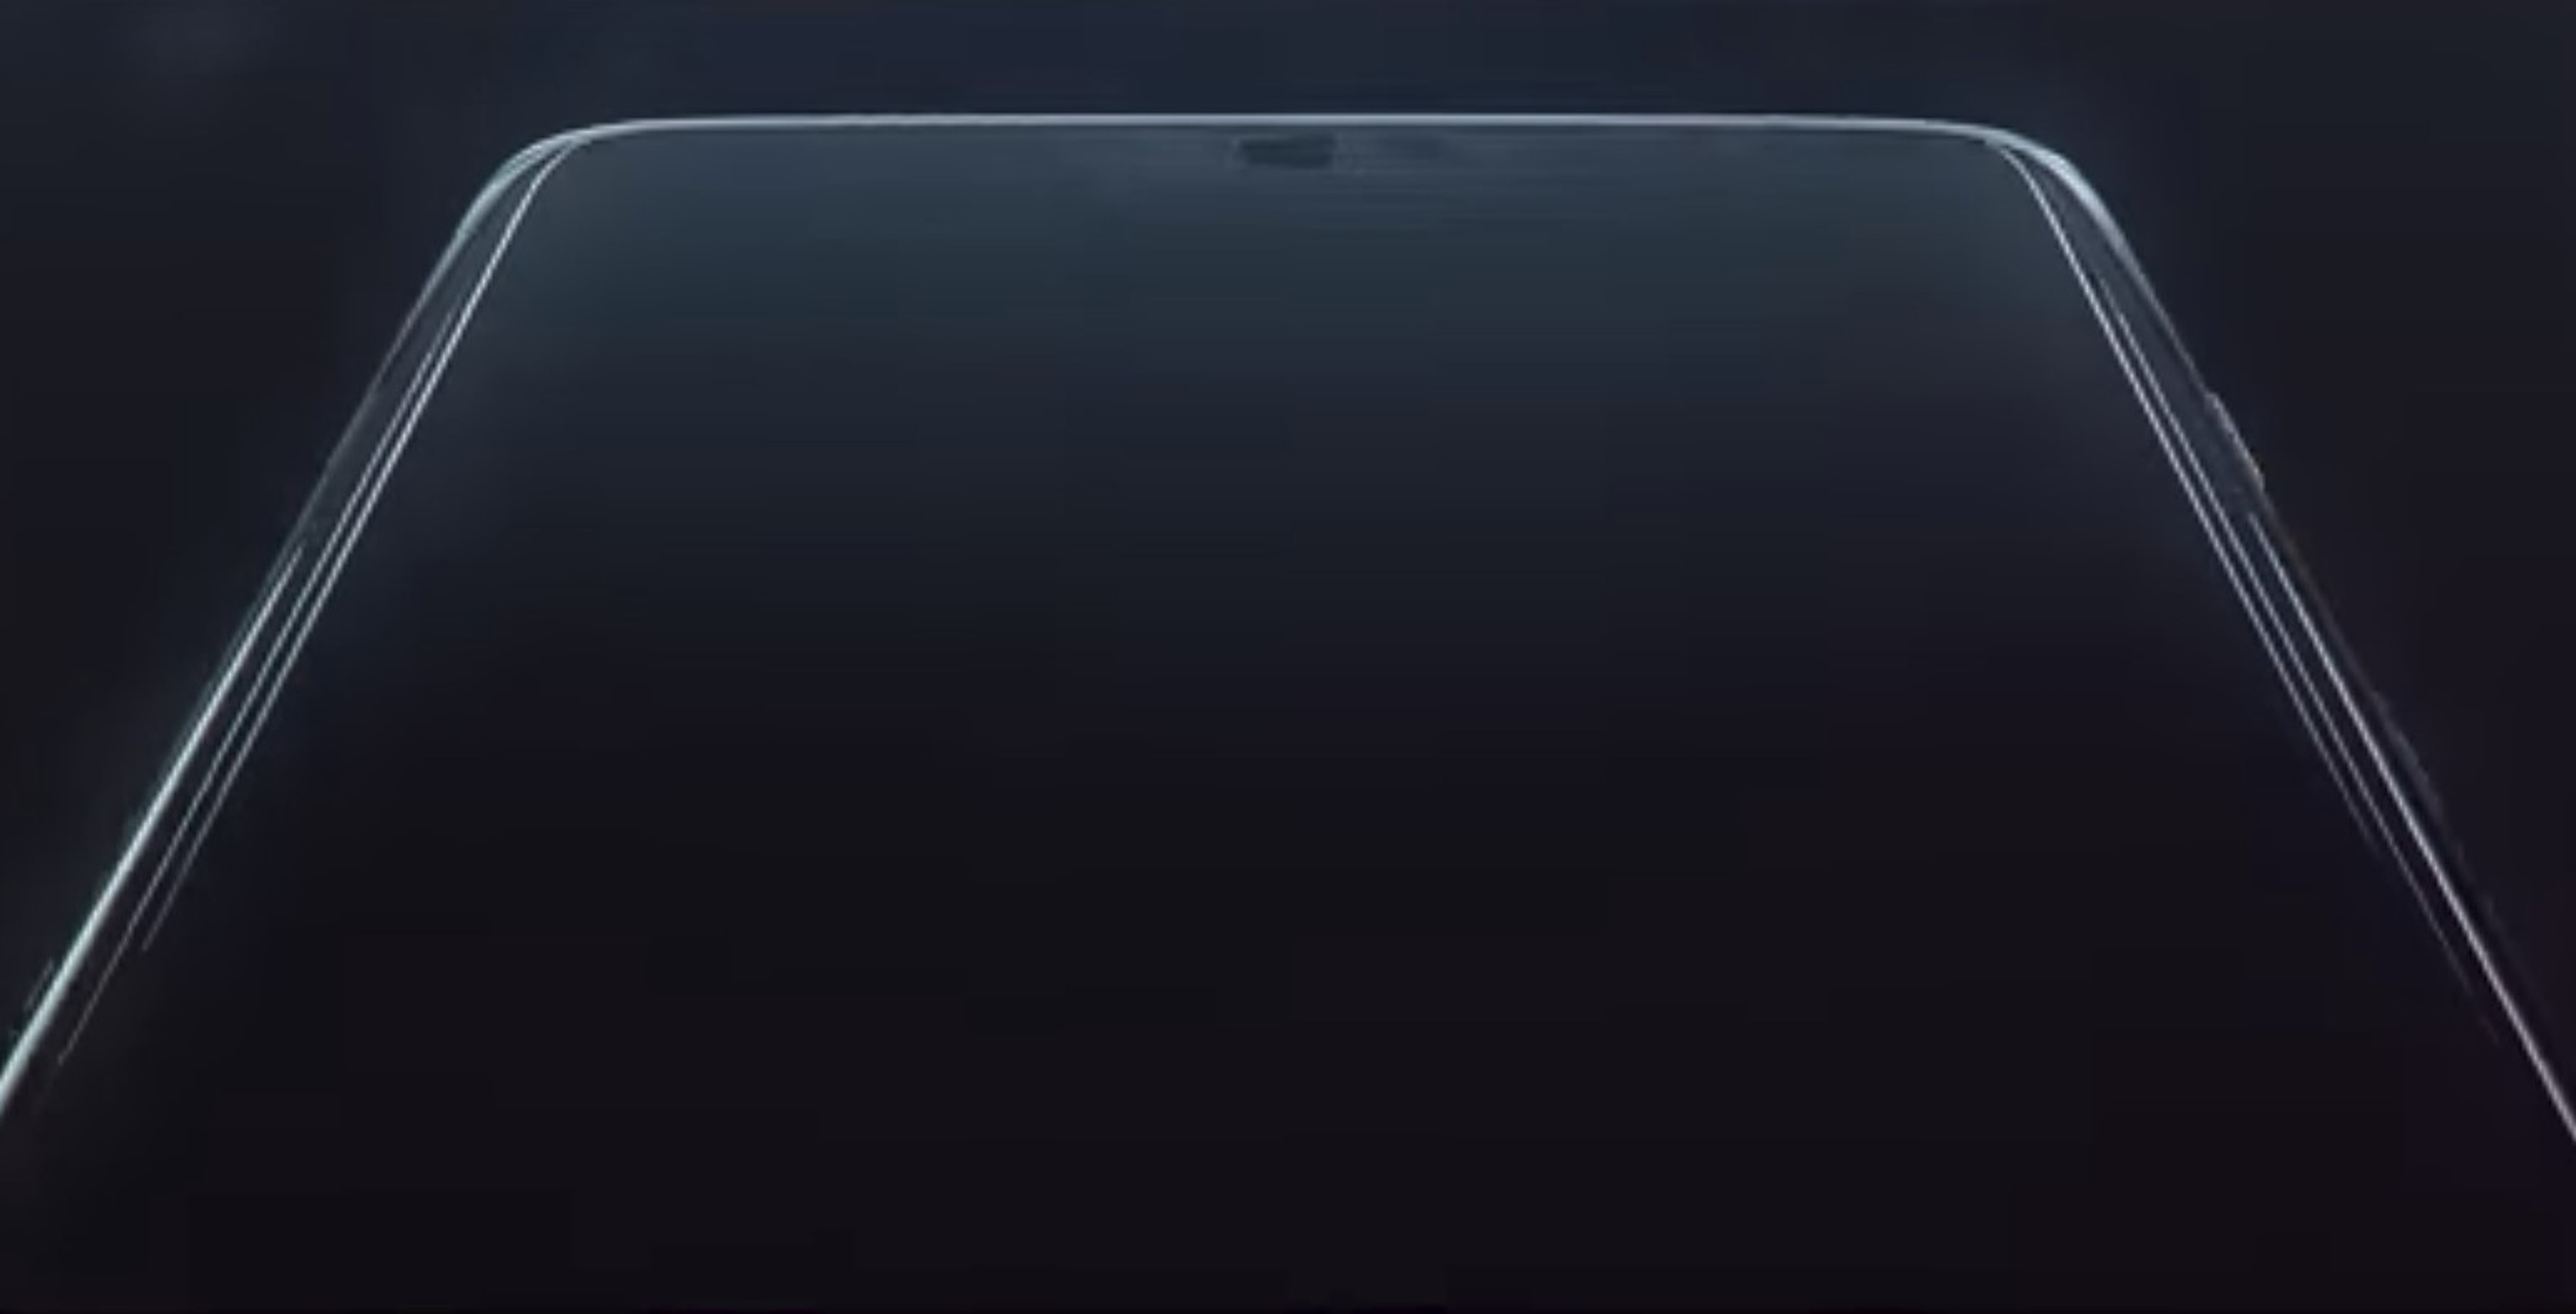 OnePlus 6 Design Leaked, Super Slo Mo Feature Spotted